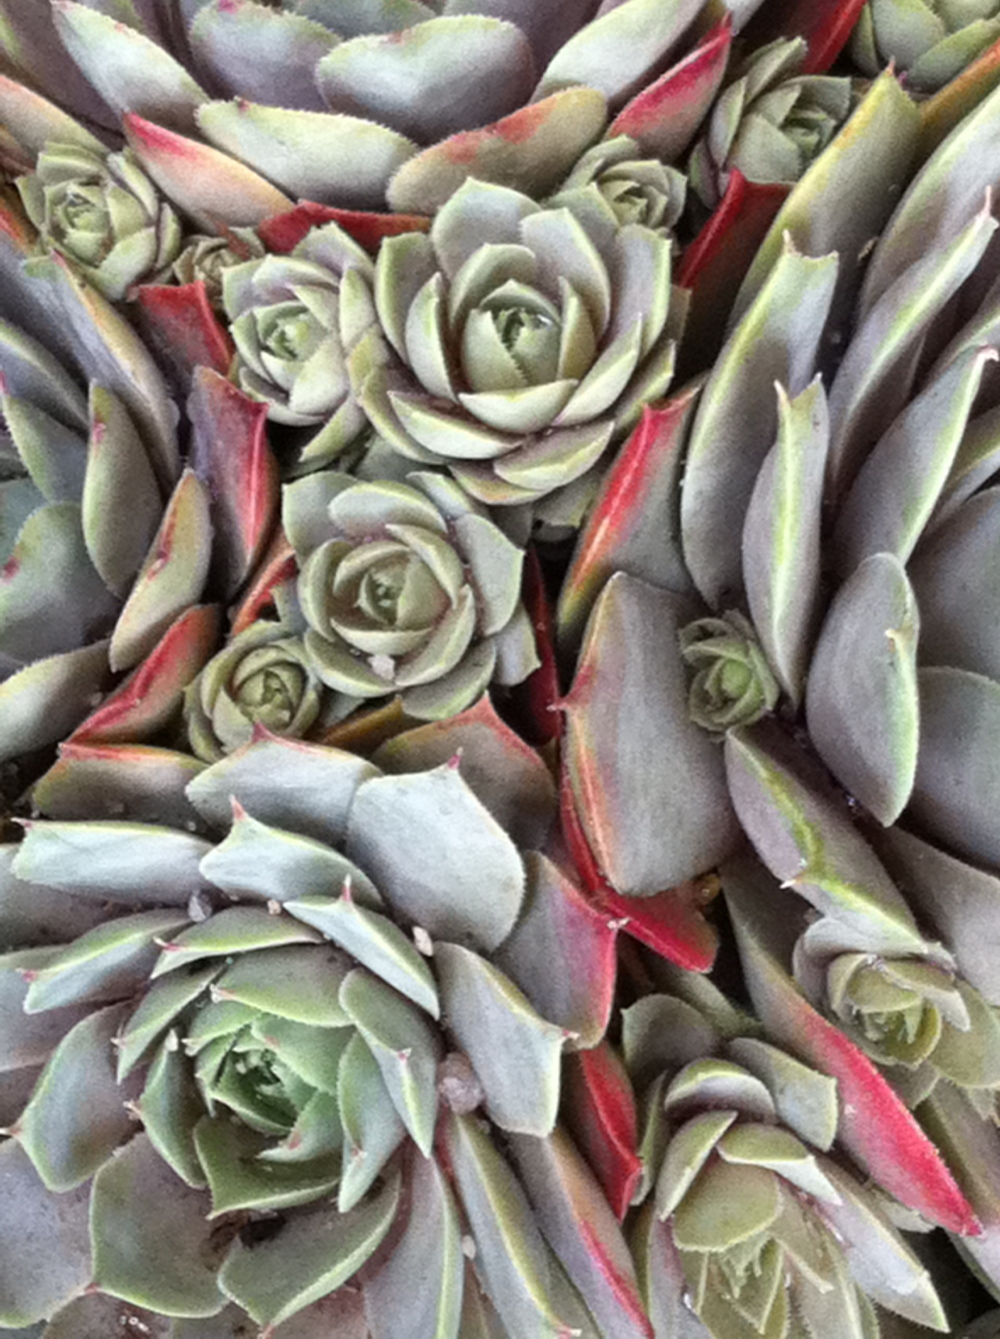 Hens and chicks, the way they multiply is insanelybeautiful.